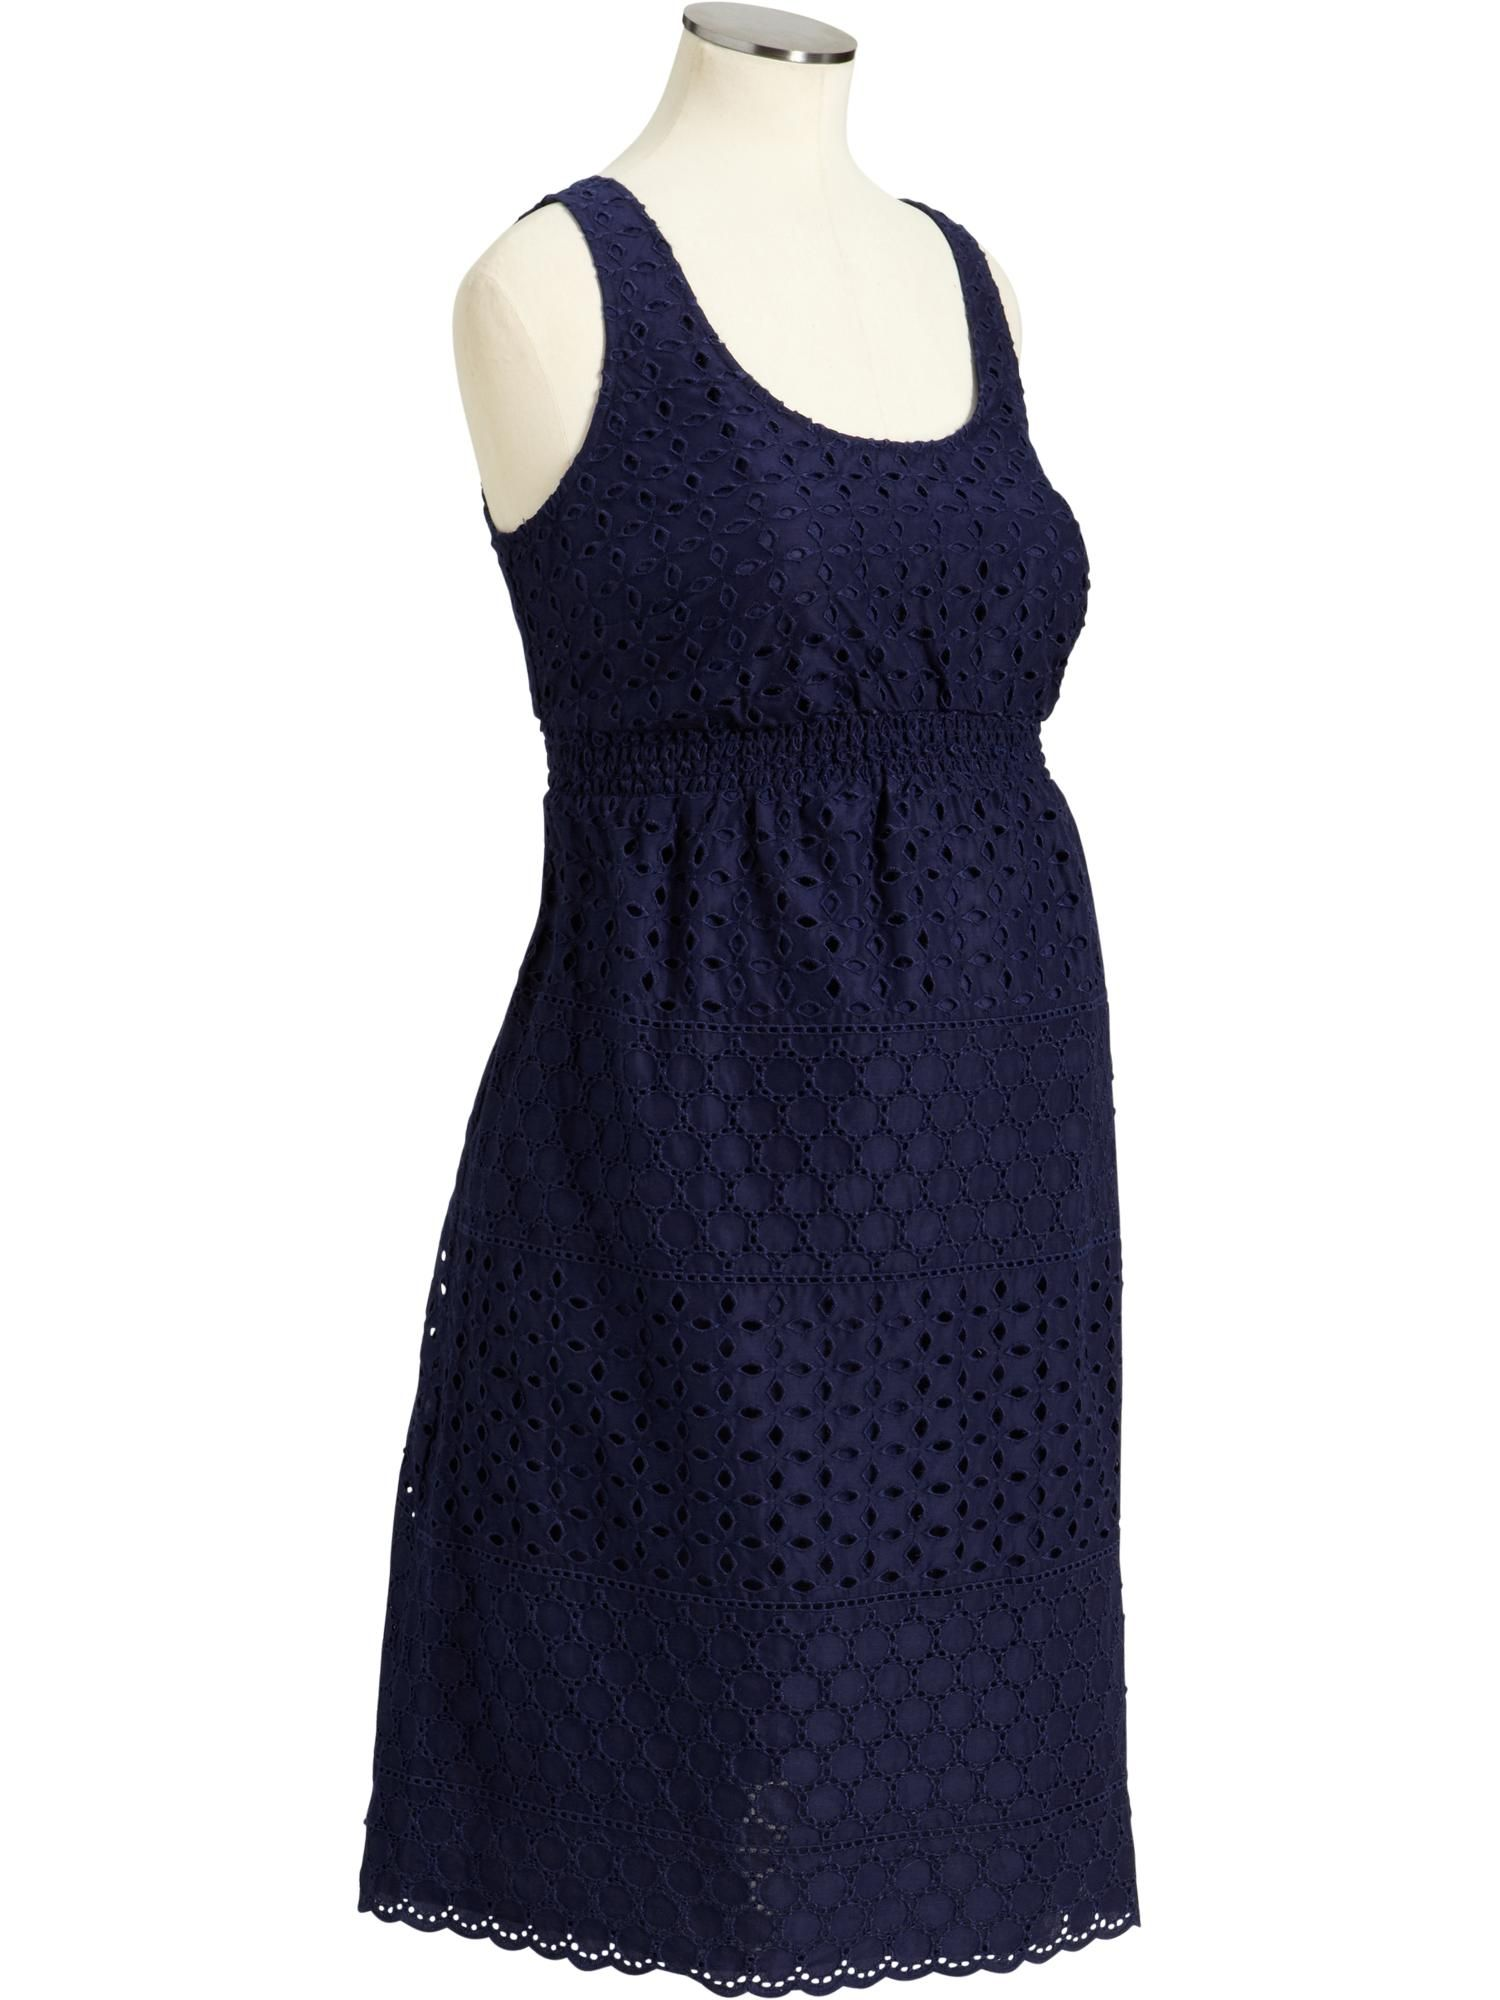 Gap Mobile Maternity Clothes Maternity Dresses Maternity Clothes Summer